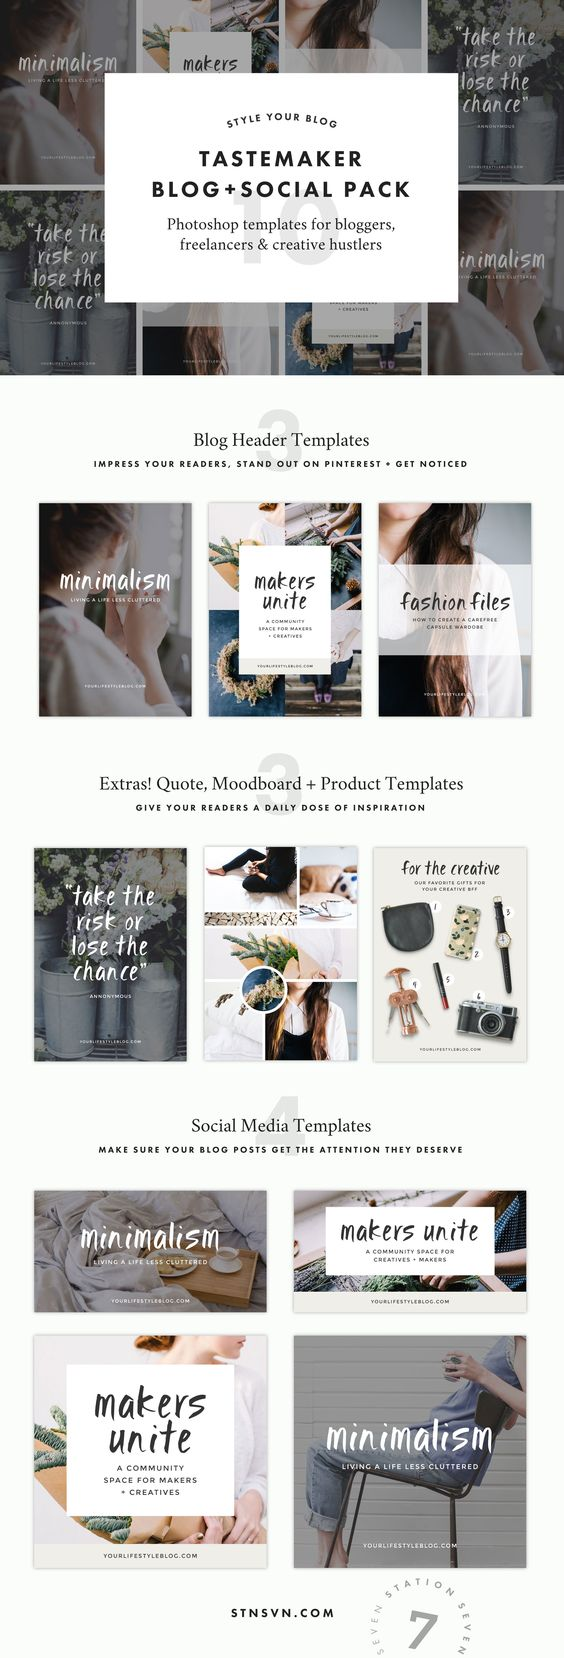 Tastemaker's Blog + Social Graphic Pack. Say goodbye to quiet social media accounts and hello to gorgeous, minimalist graphics that hook your readers. Create the perfect templates for your Pinterest, Instagram, and social headers and images.